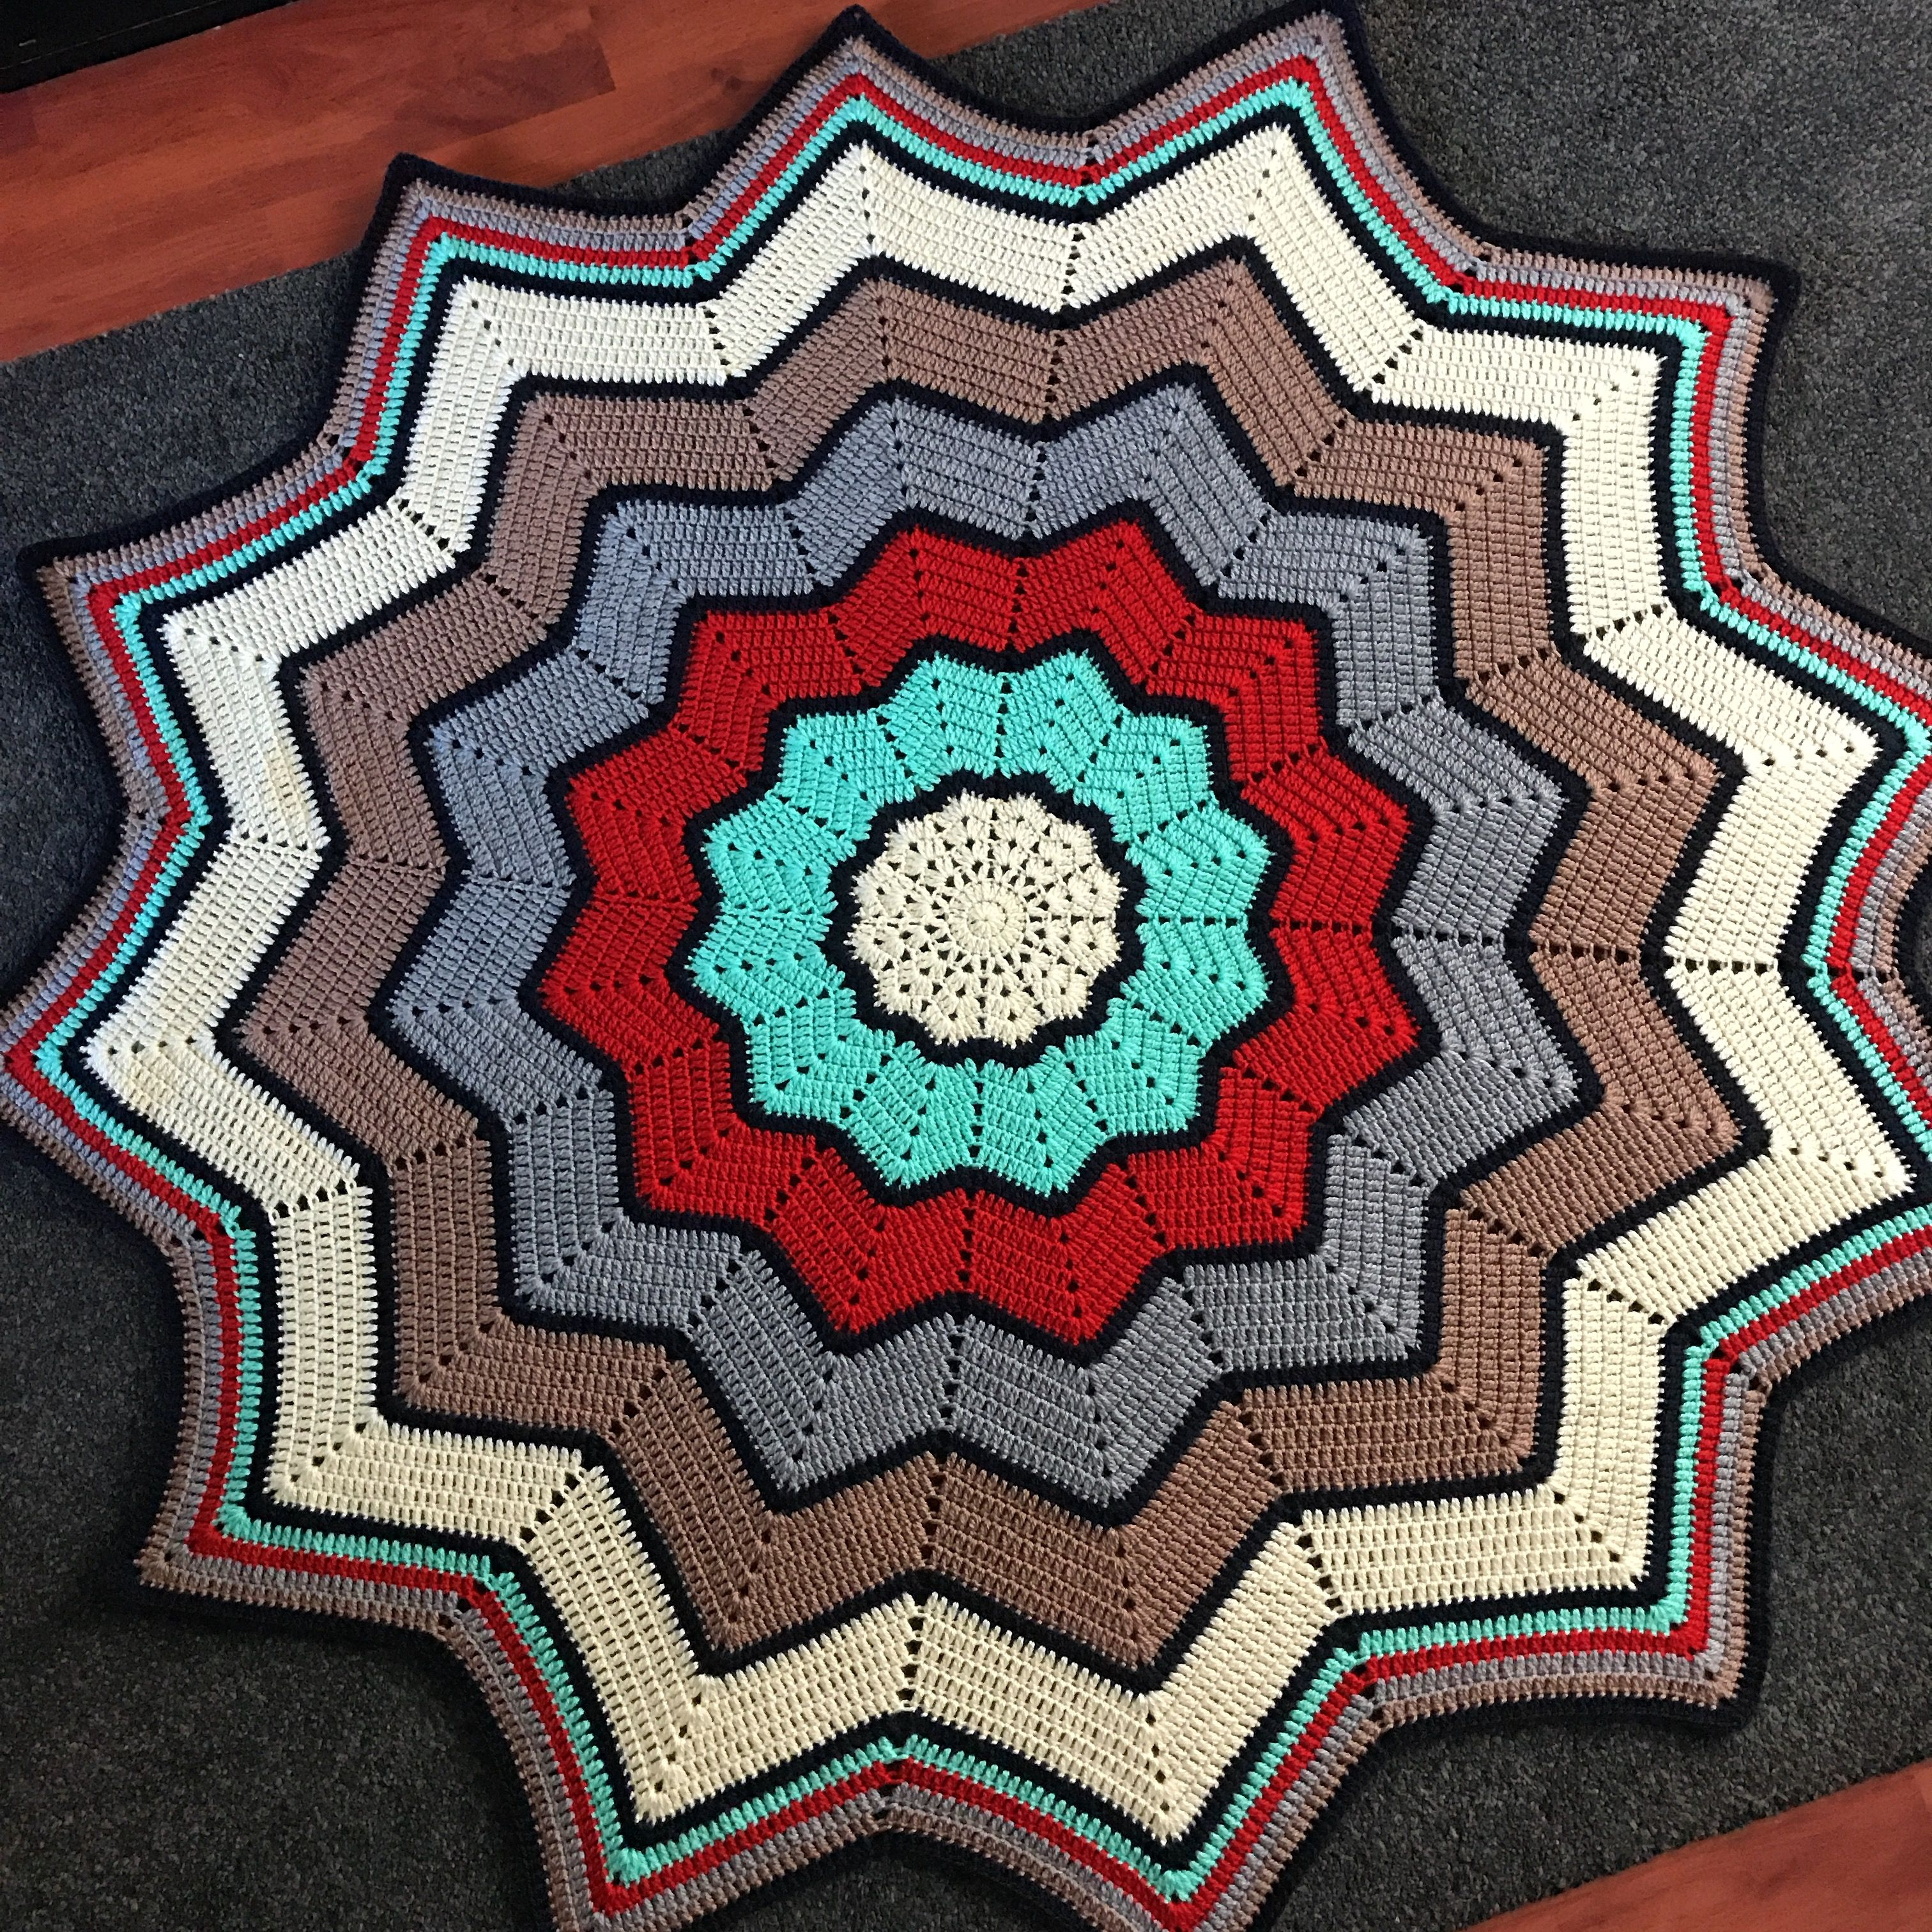 Crochet 12 point star blanket pattern is the round ripple crochet 12 point star blanket pattern is the round ripple blanket 12 pointed star by bankloansurffo Images